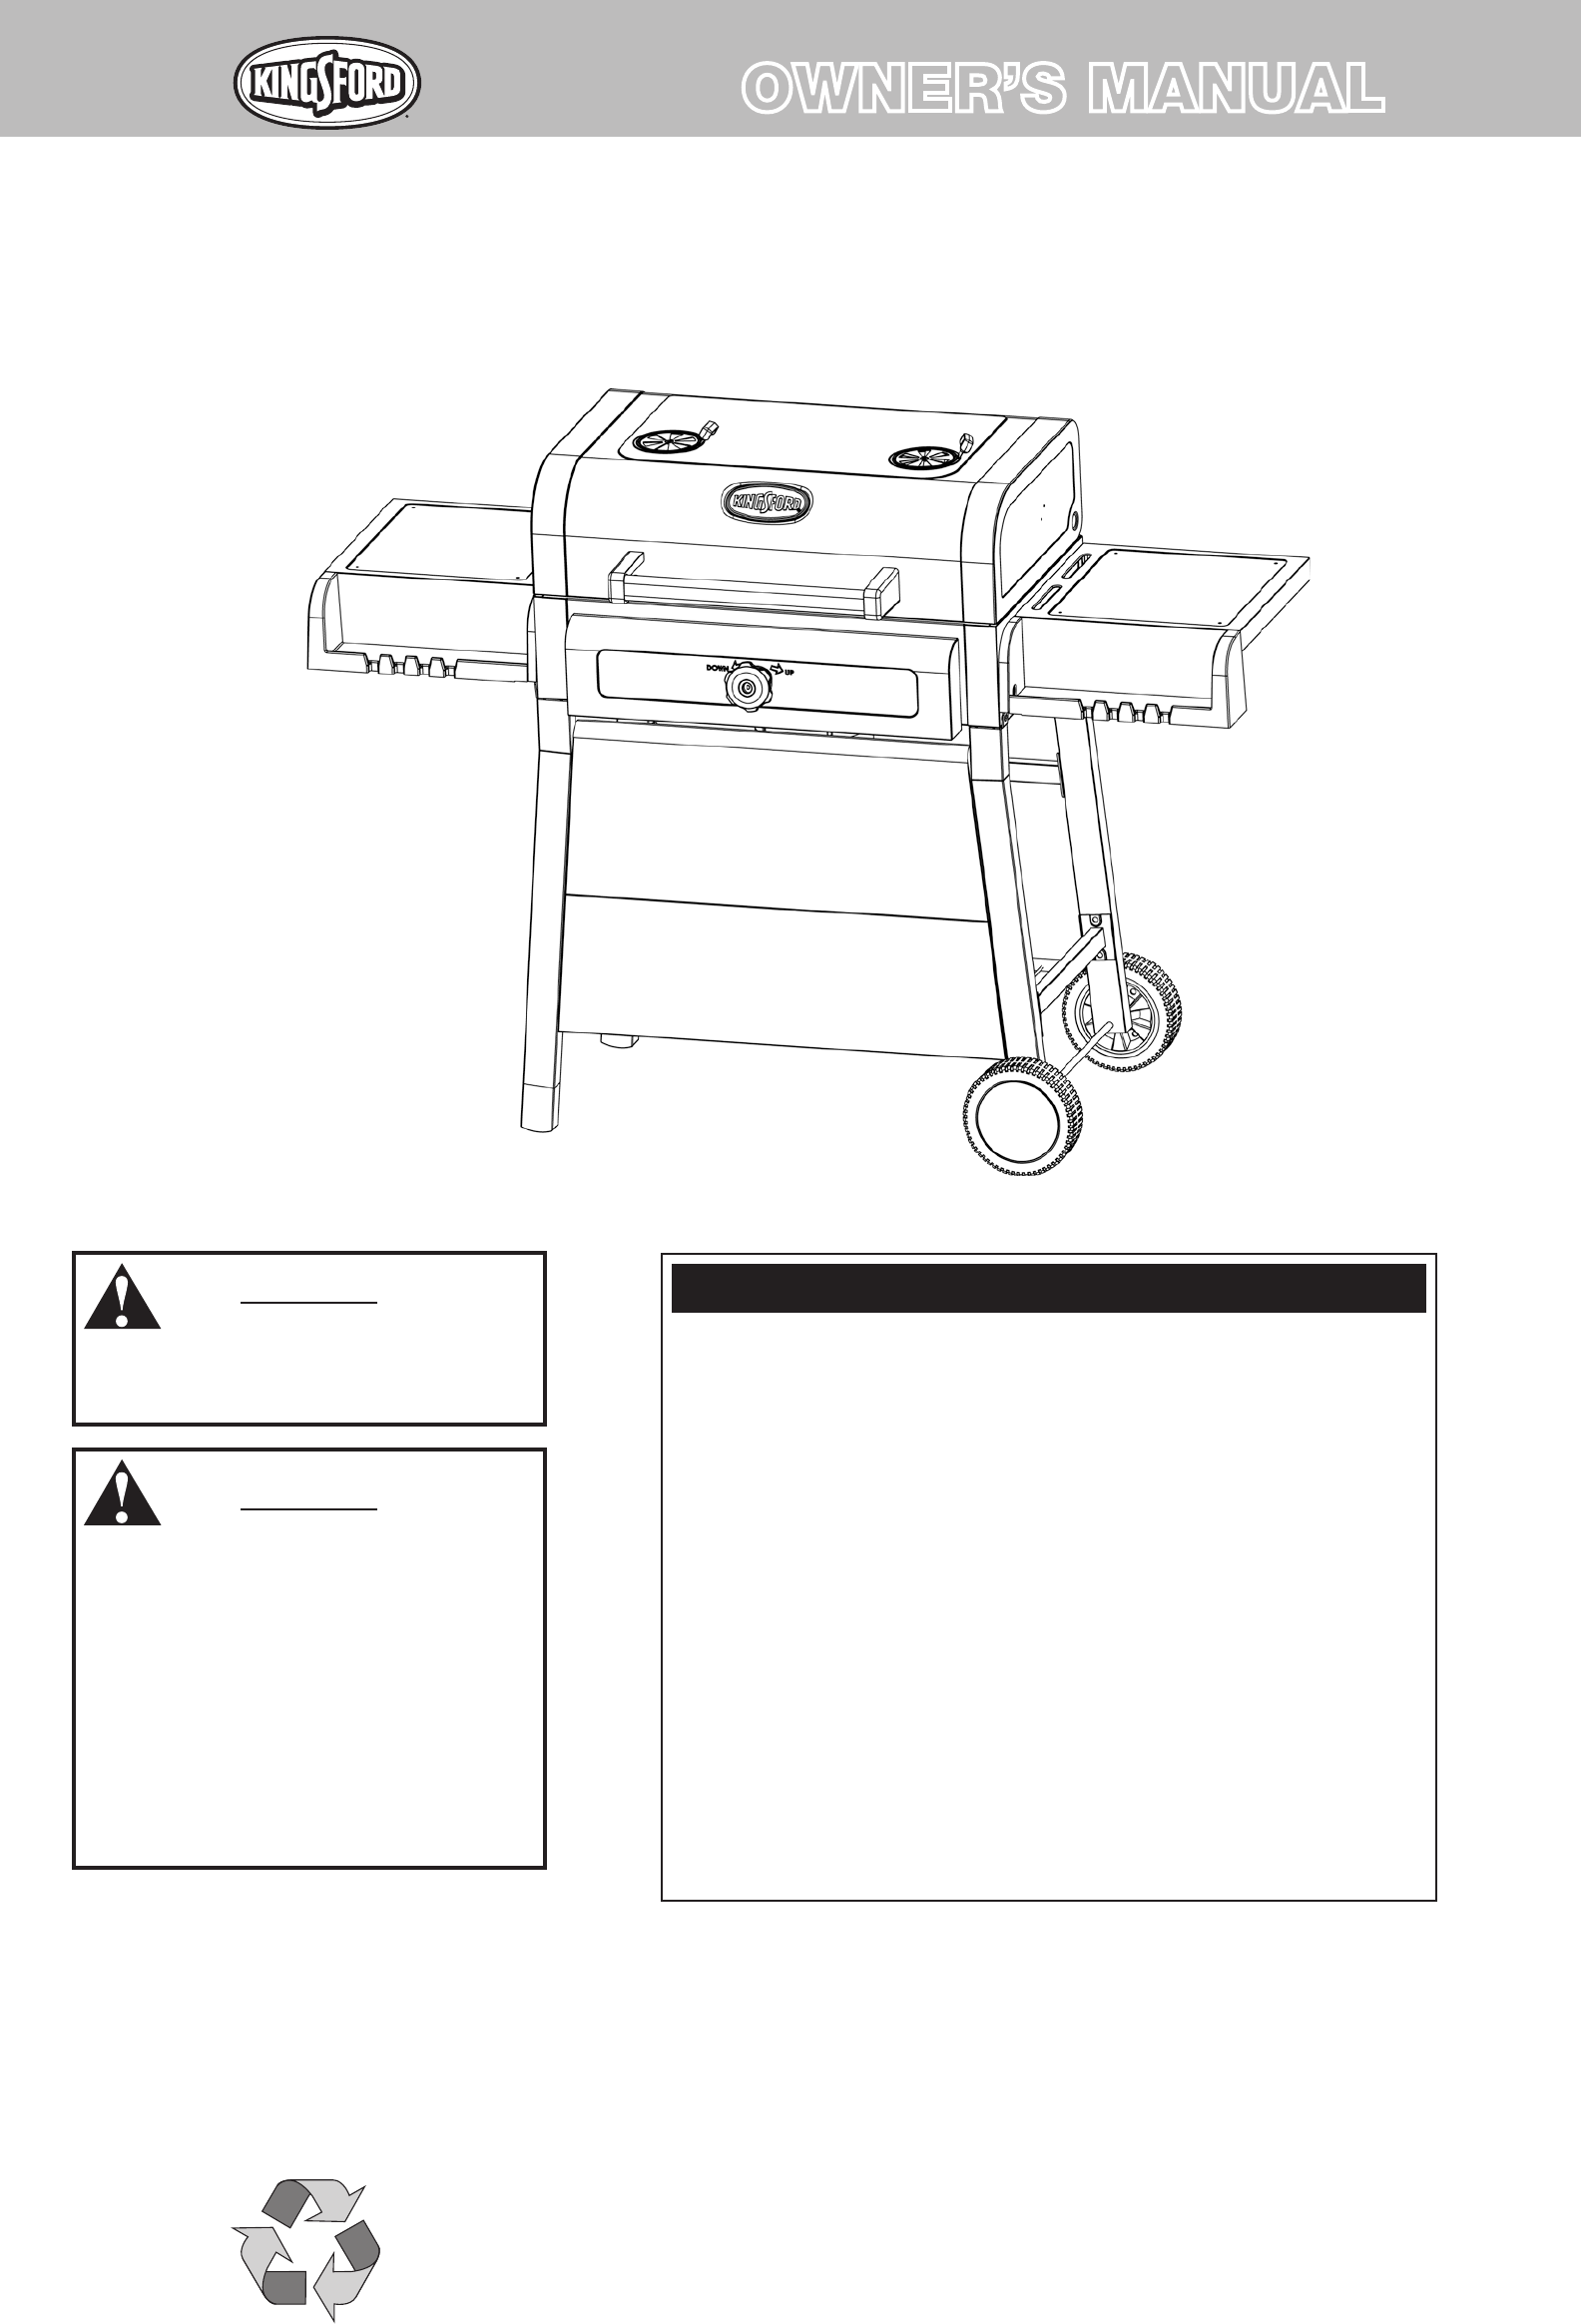 Download Kingsford Charcoal Grill CBC1042W manual and user ...